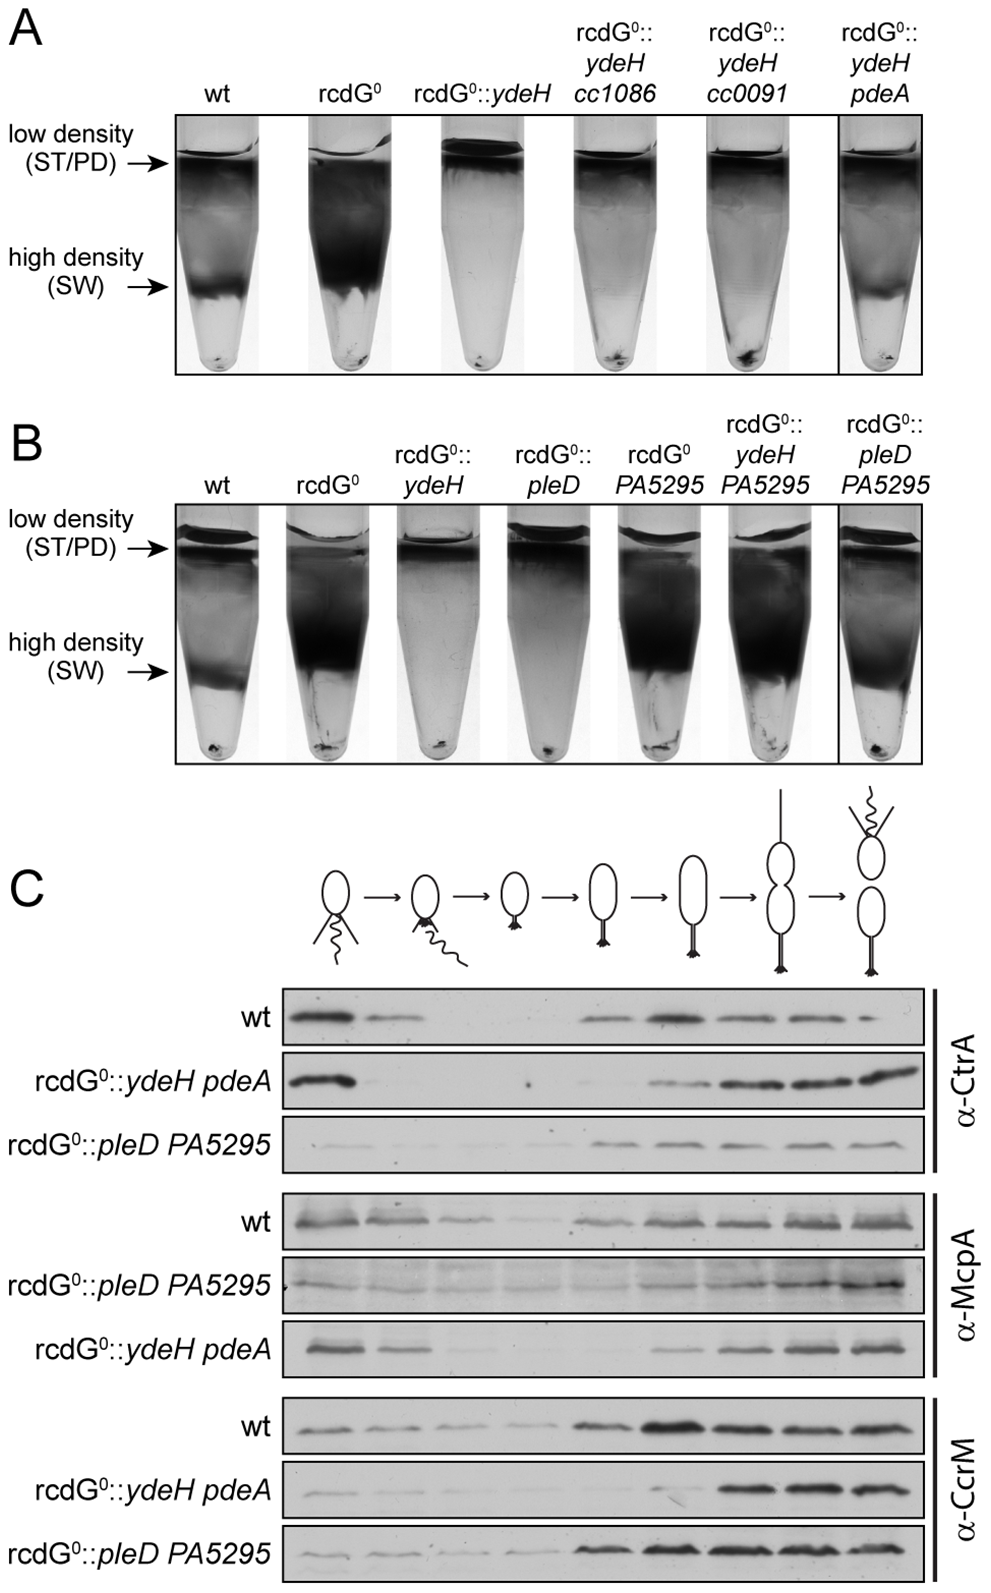 Redundant enzymes facilitate c-di-GMP fluctuations during the cell cycle.